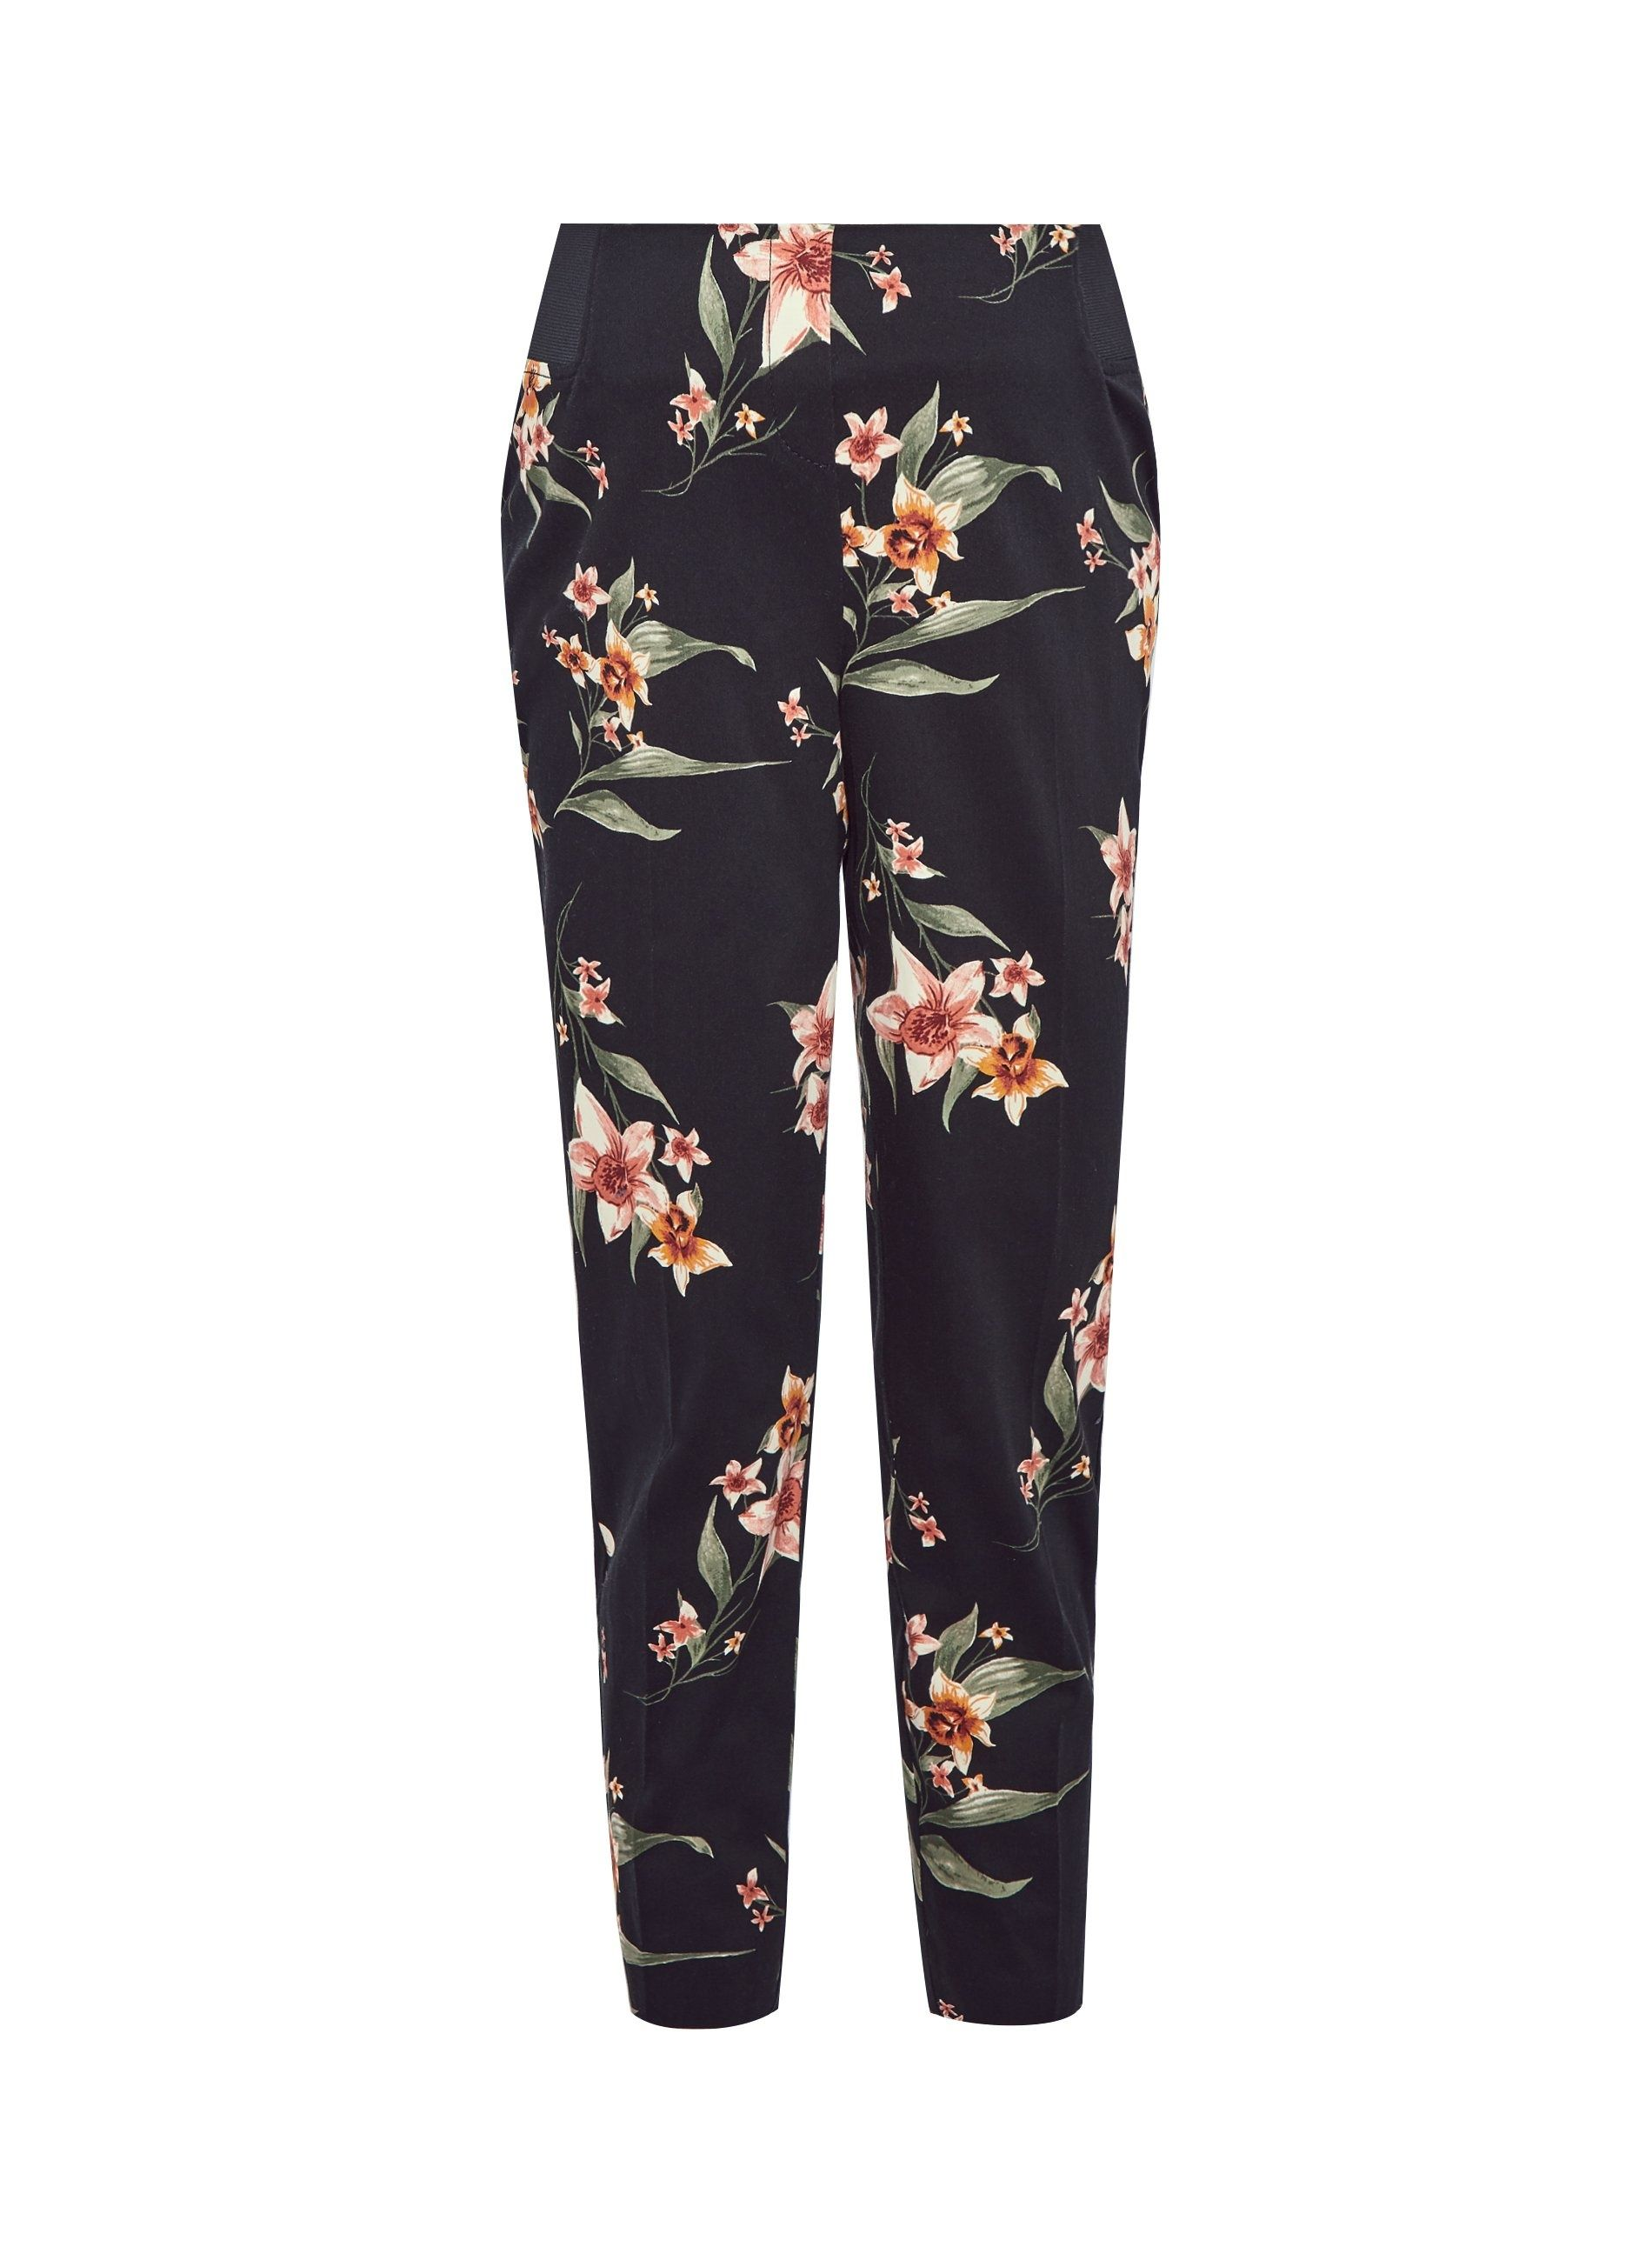 Dorothy Perkins Womens Maternity Black Ankle Grazer Trousers Pants Floral Print